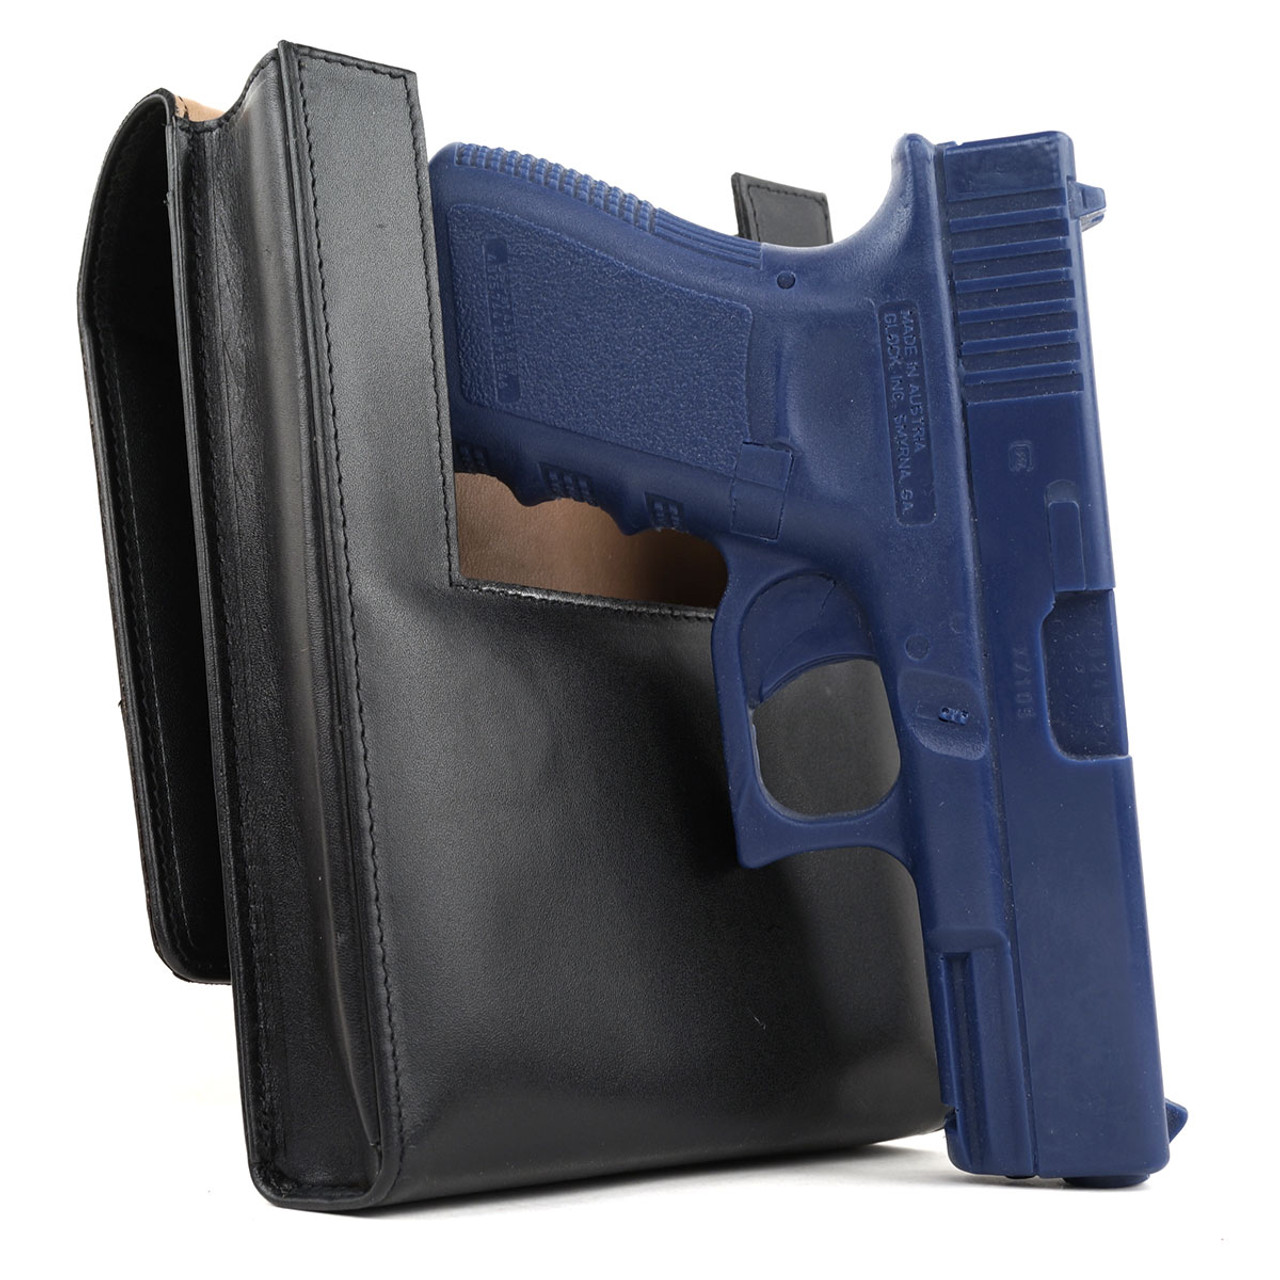 Glock 23 Concealed Carry Holster (Belt Loop)